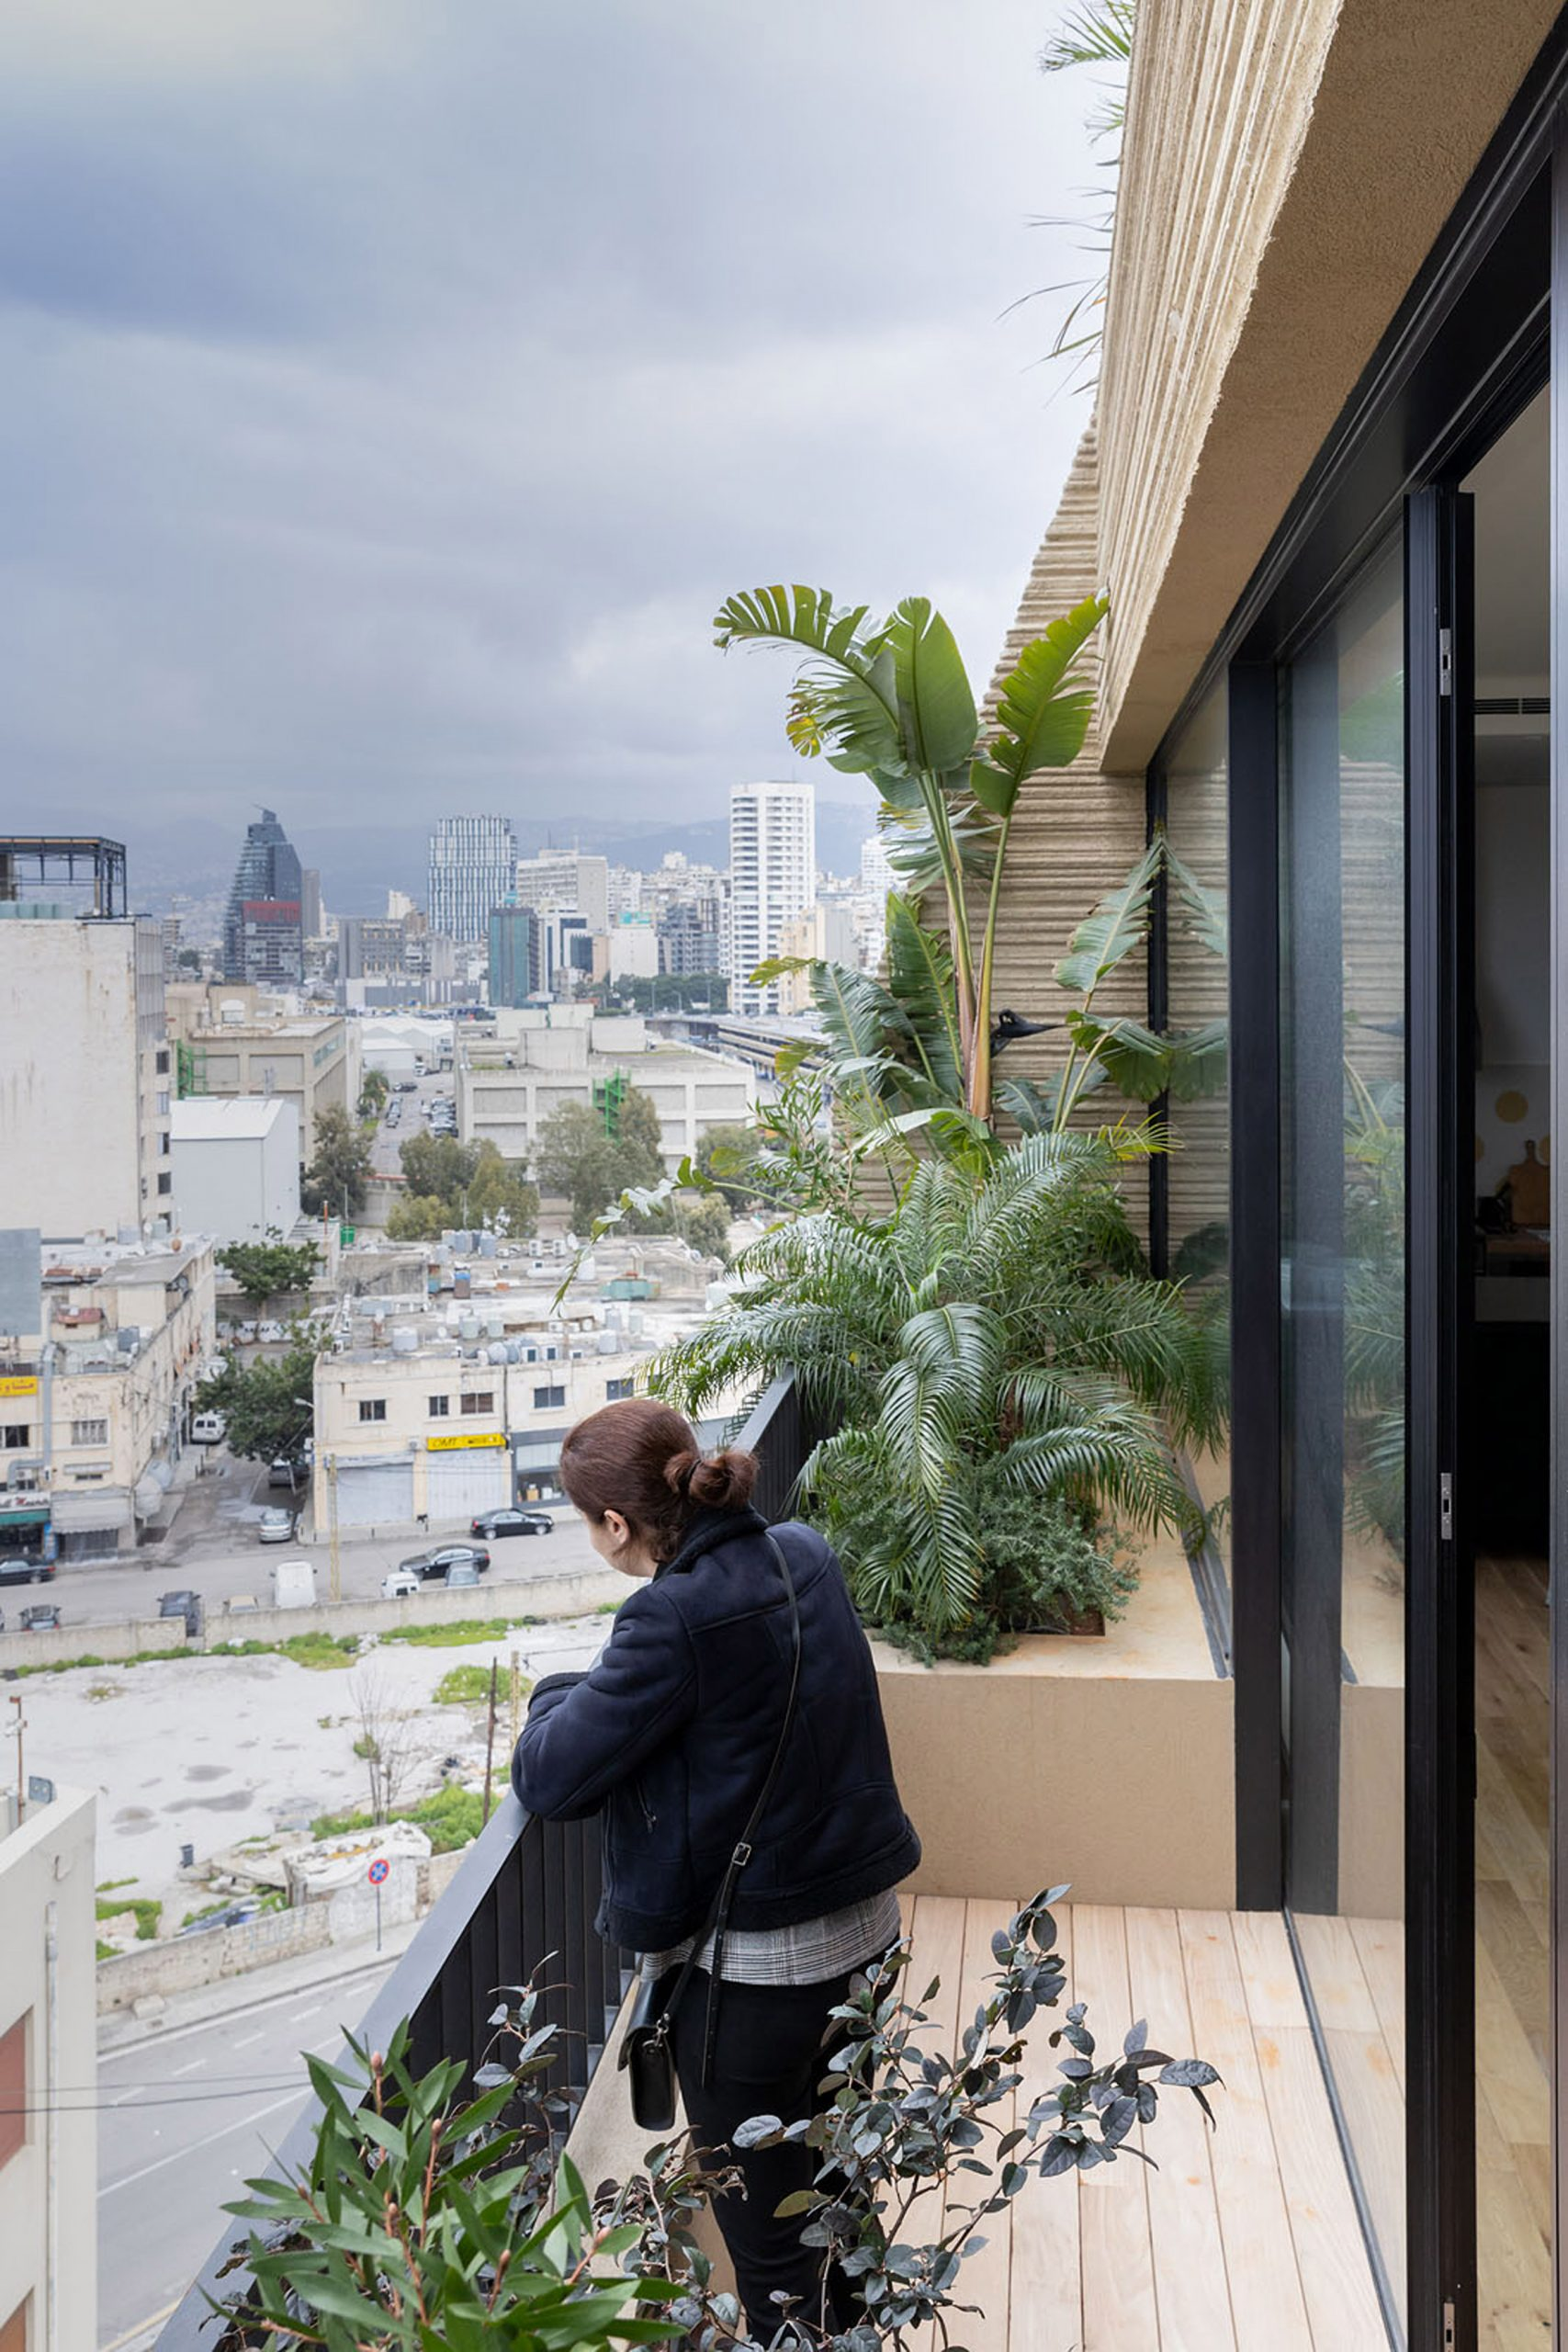 Balcony of Stone Garden by Lina Ghotmeh in Beirut